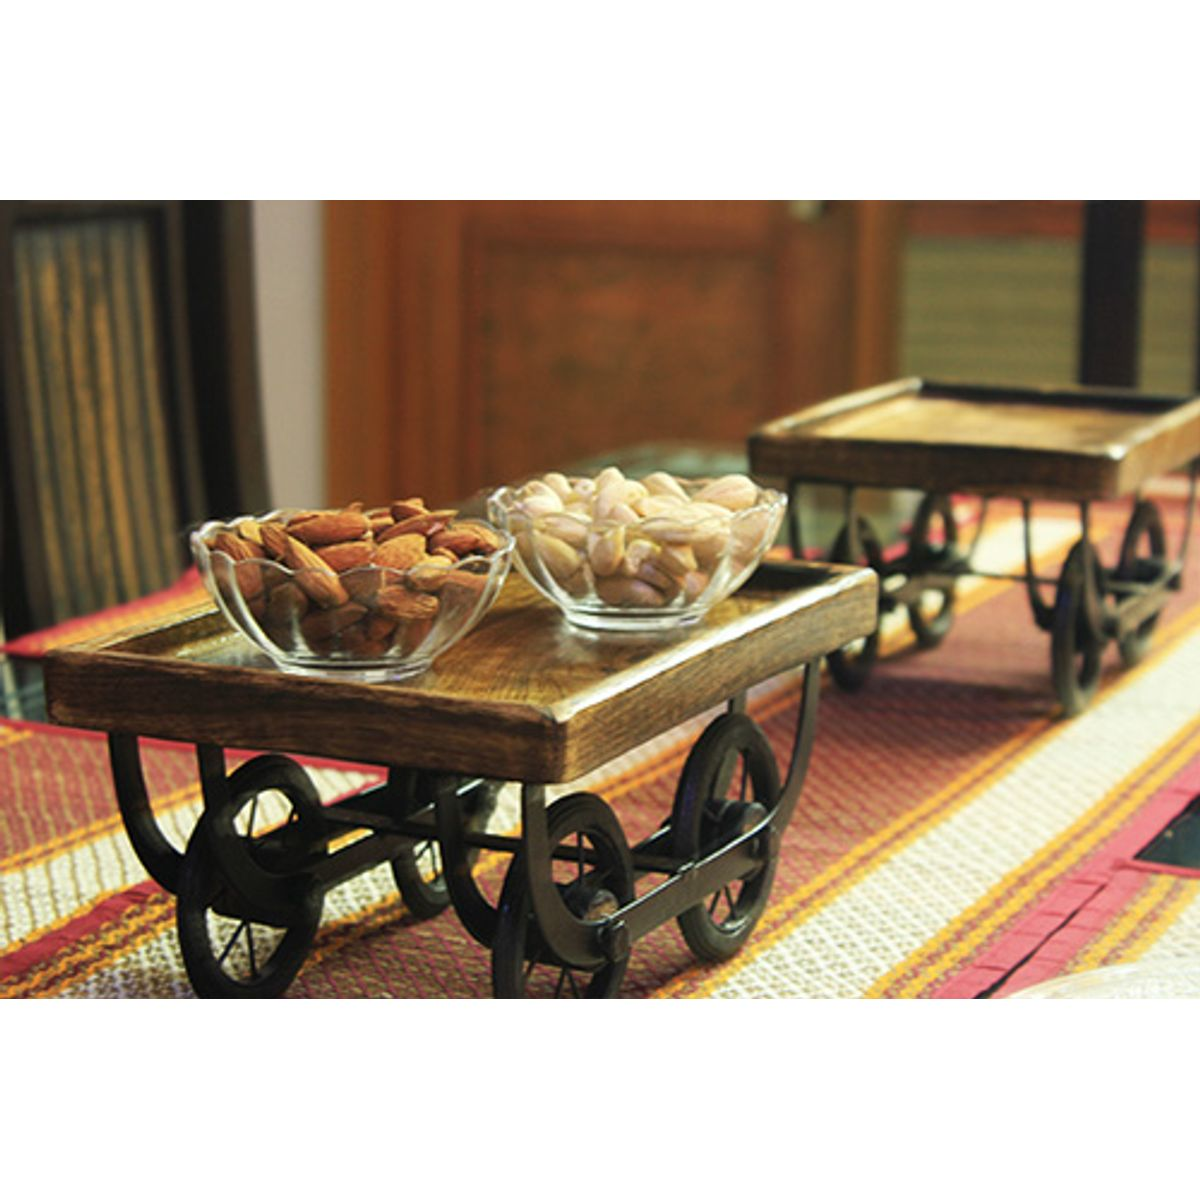 Piece of Art Wood Cart for Dining Table